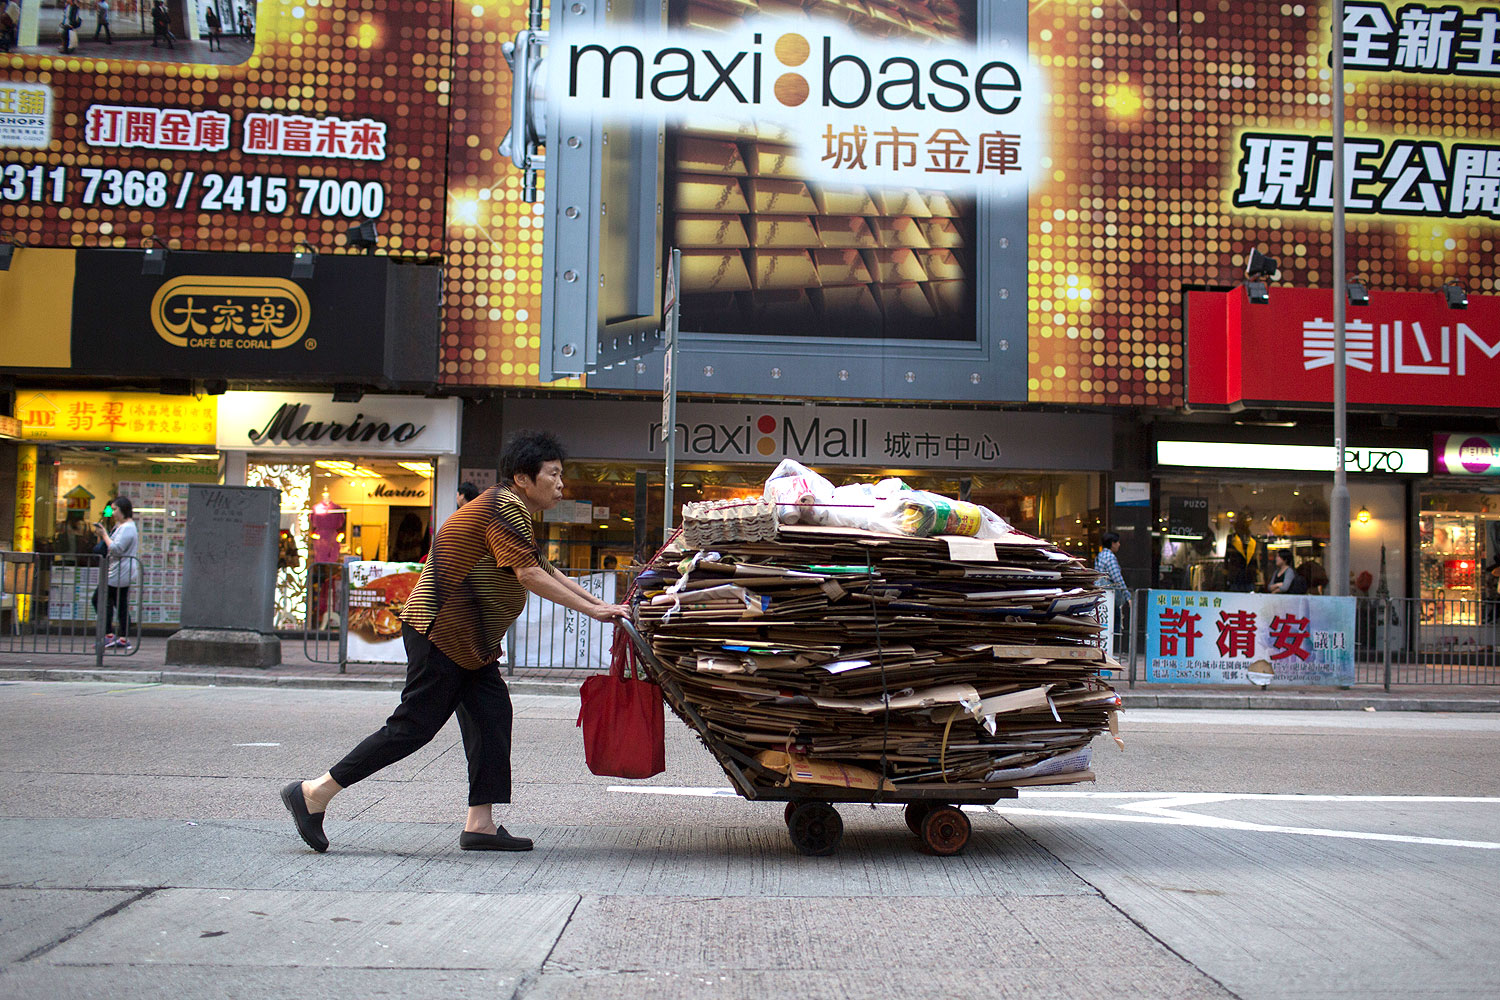 An elderly woman pushes a cart filled with cardboard for recycling in the North Point area of Hong Kong, China, on Oct. 18, 2013